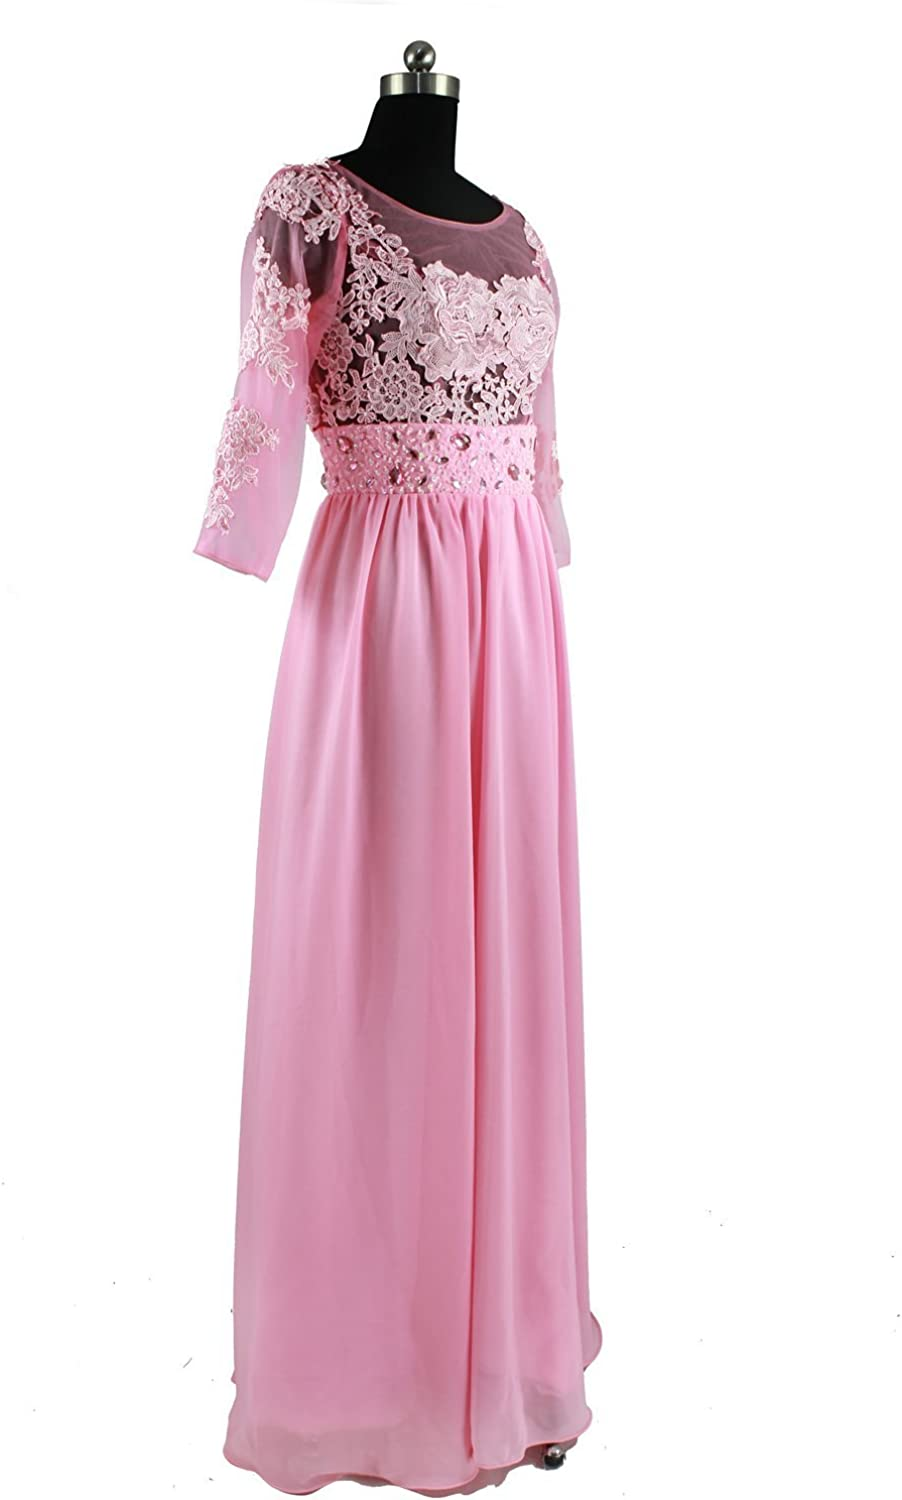 CharmingBridal Long Sleeve Pink Applique Formal Evening Dress Prom Party Dress